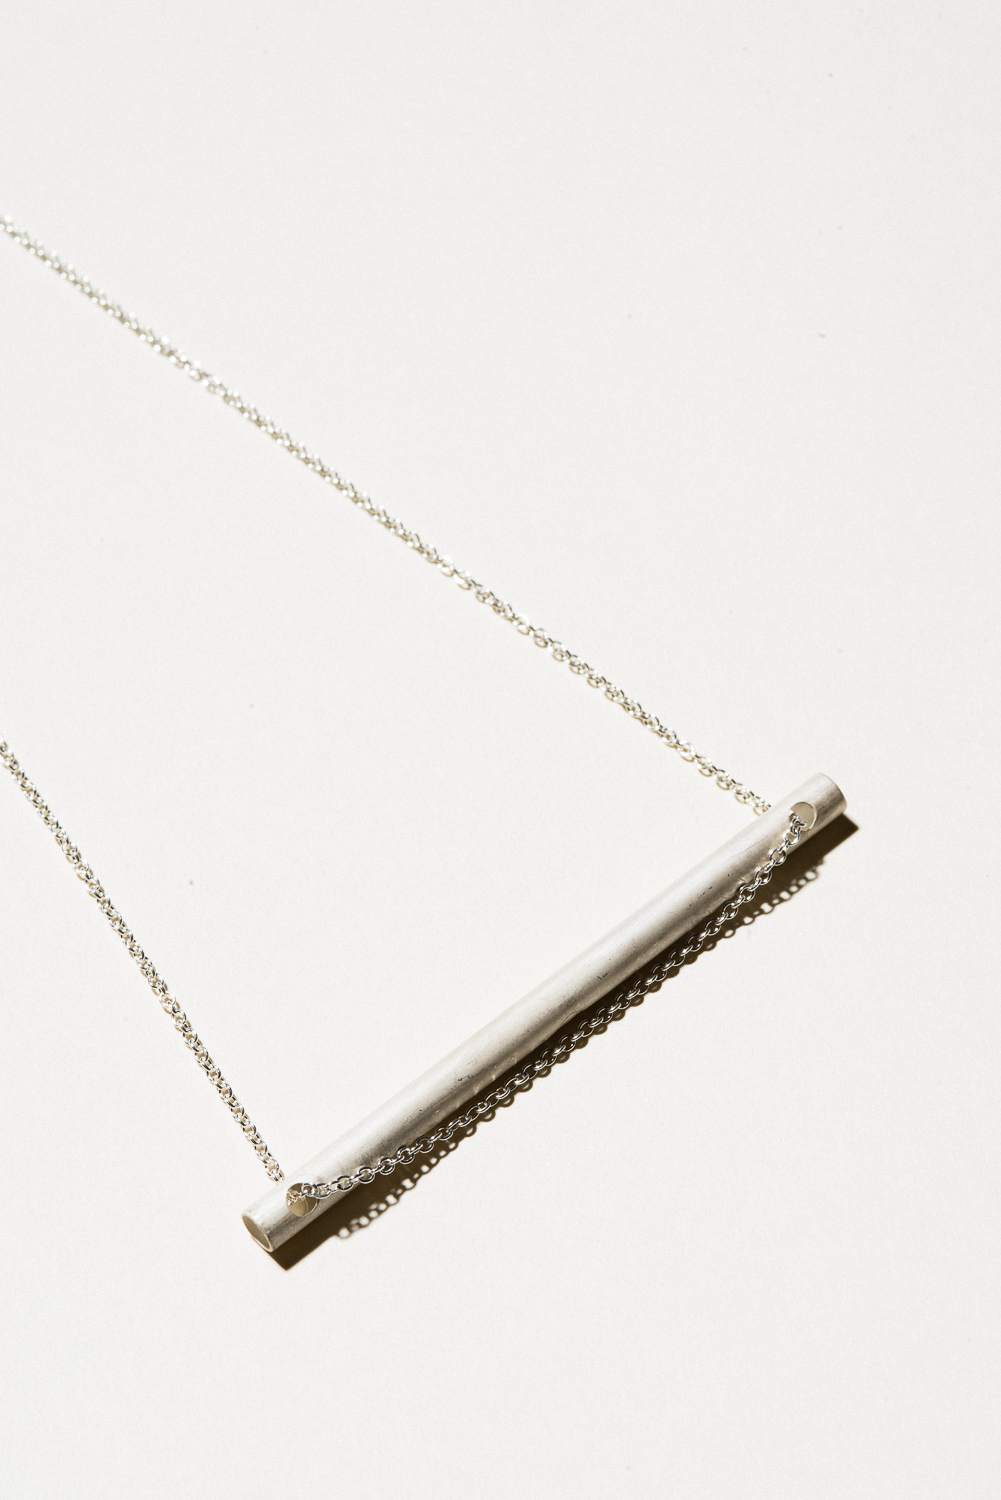 "Silver Tube Necklace - 3"" on a 22"" chainSterling Silver, Raw FinishHand Smithed$100"